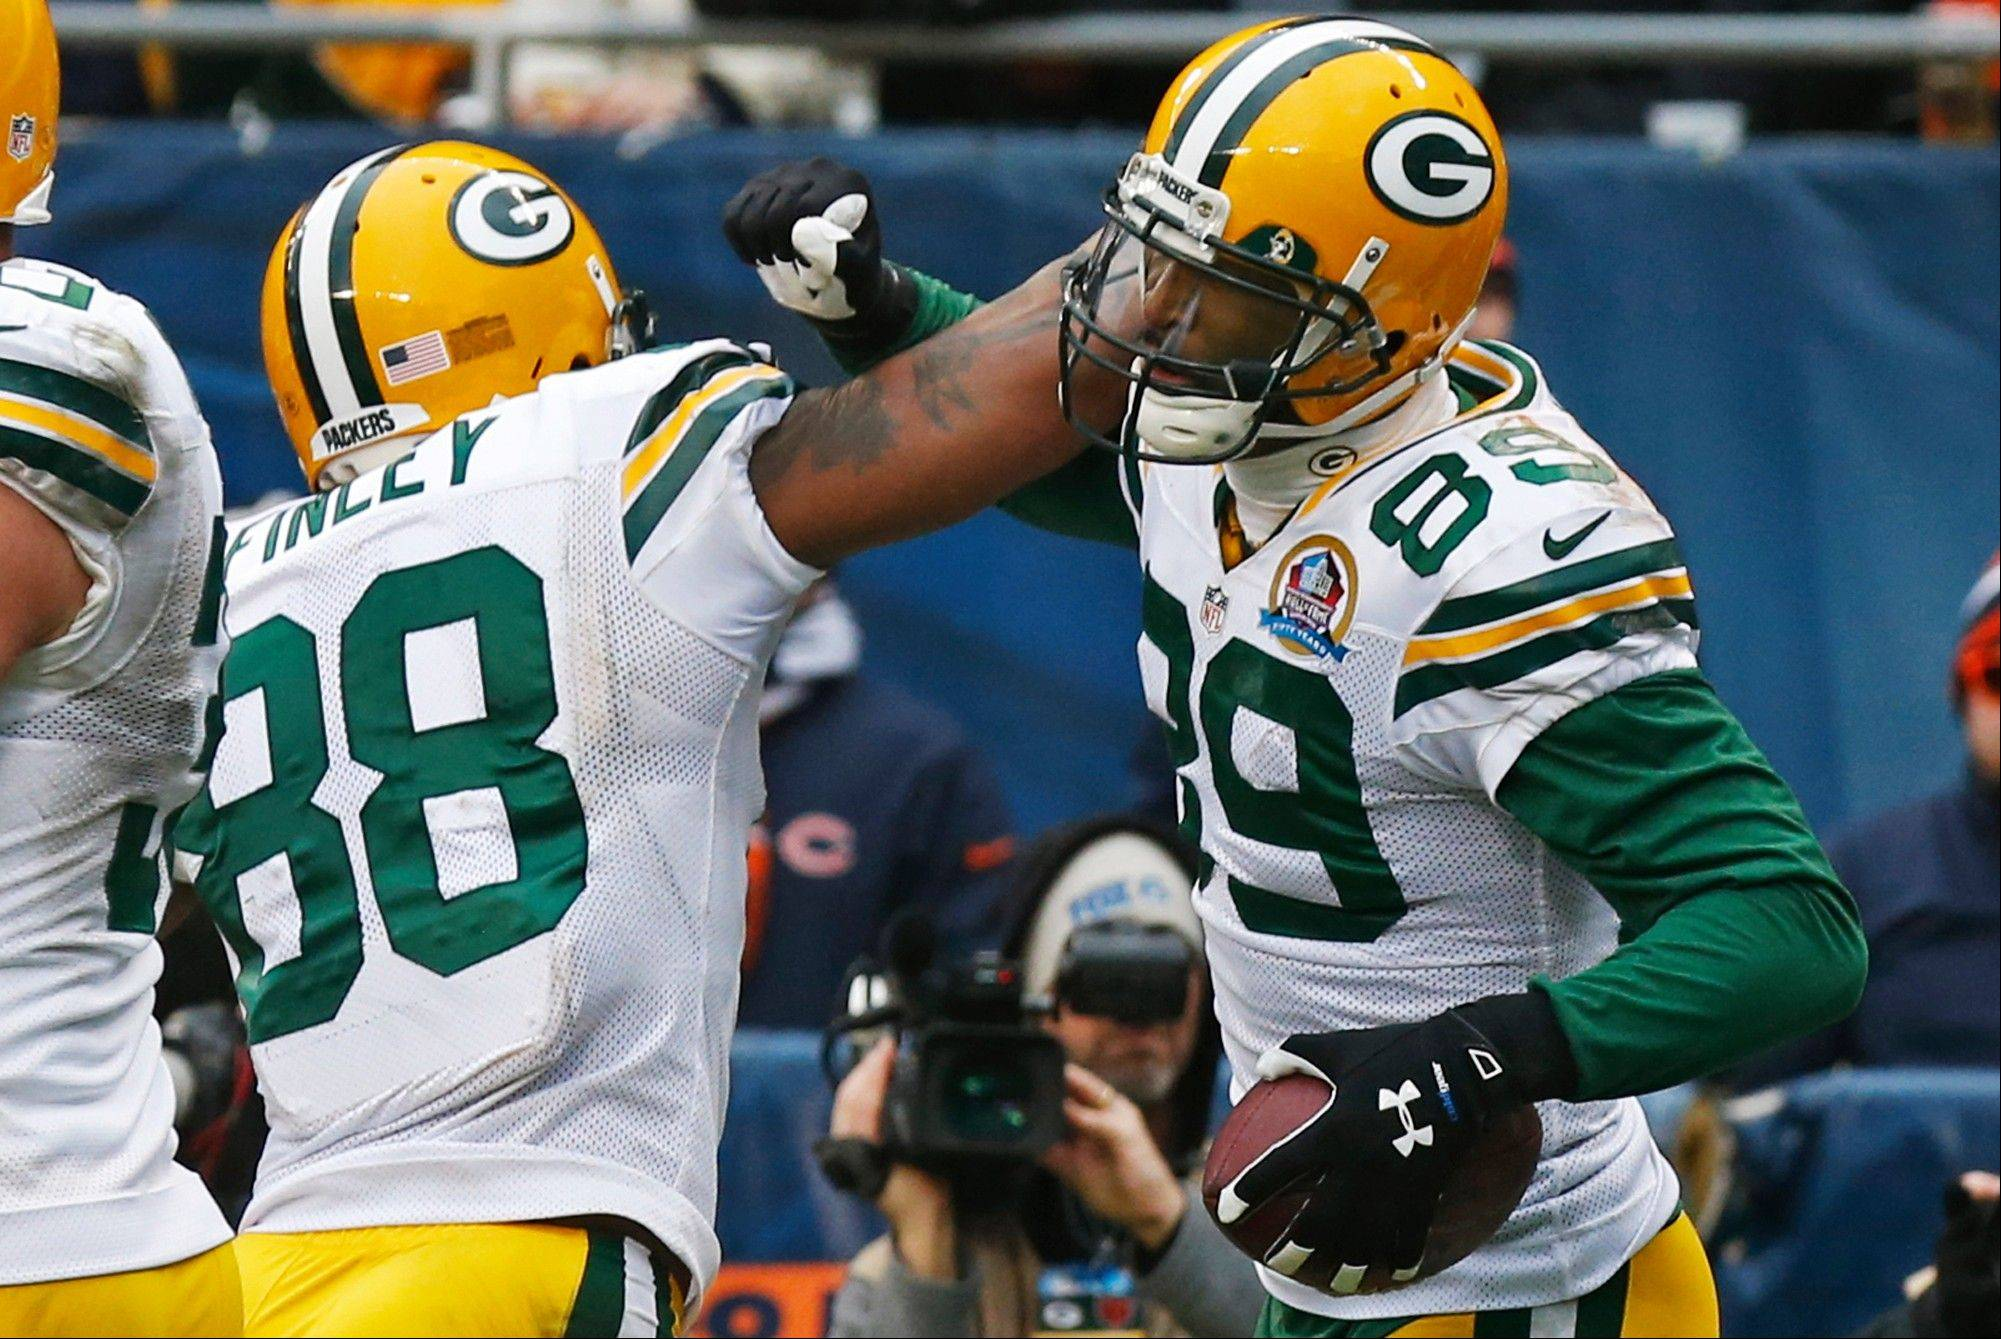 Green Bay Packers wide receiver James Jones (89) celebrates his touchdown reception with teammate Jermichael Finley (88) in the second half of an NFL football game in Chicago, Sunday, Dec. 16, 2012.